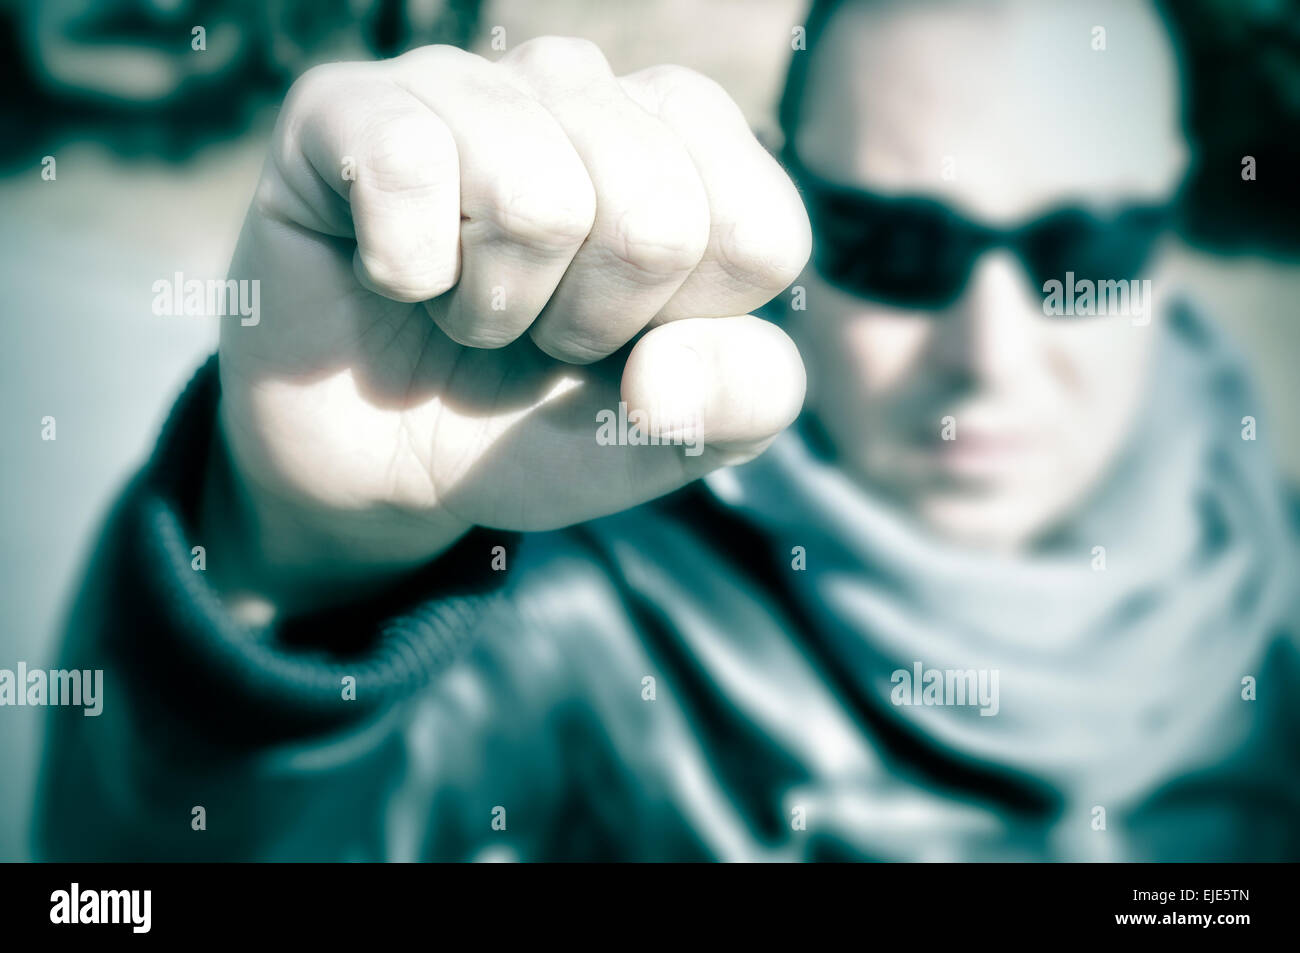 closeup of a young man in a protest raising his fist and with his face blurred, with a filter effect - Stock Image